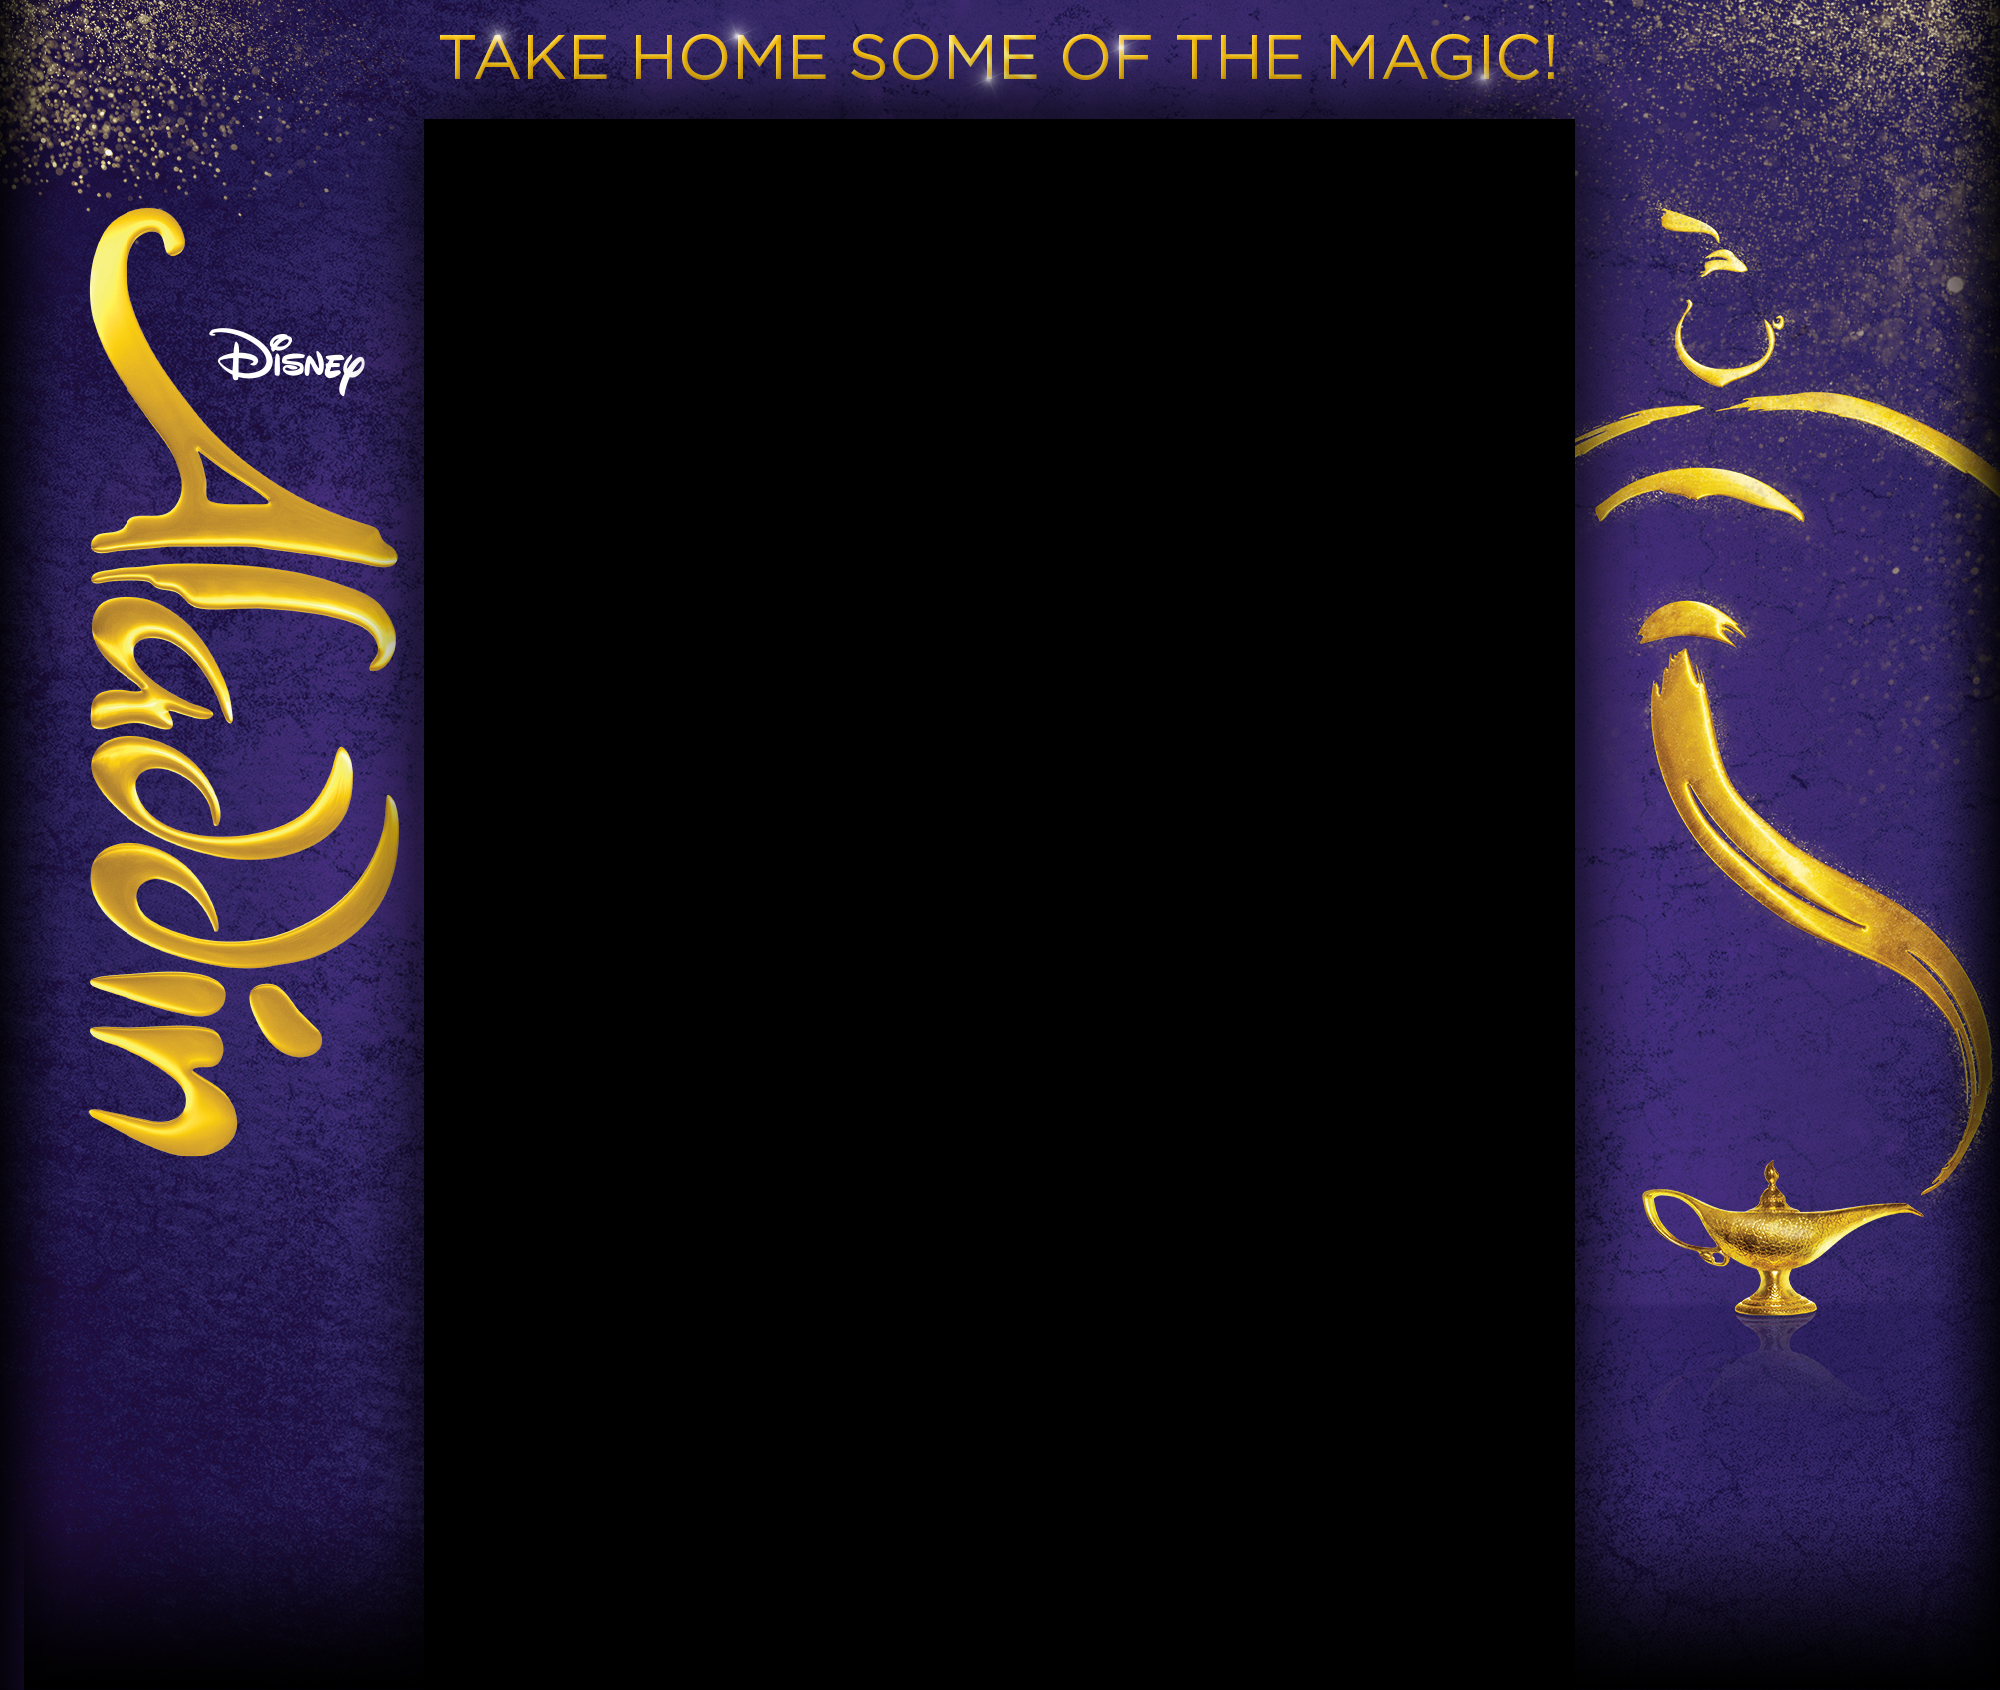 aladdin-background.jpg